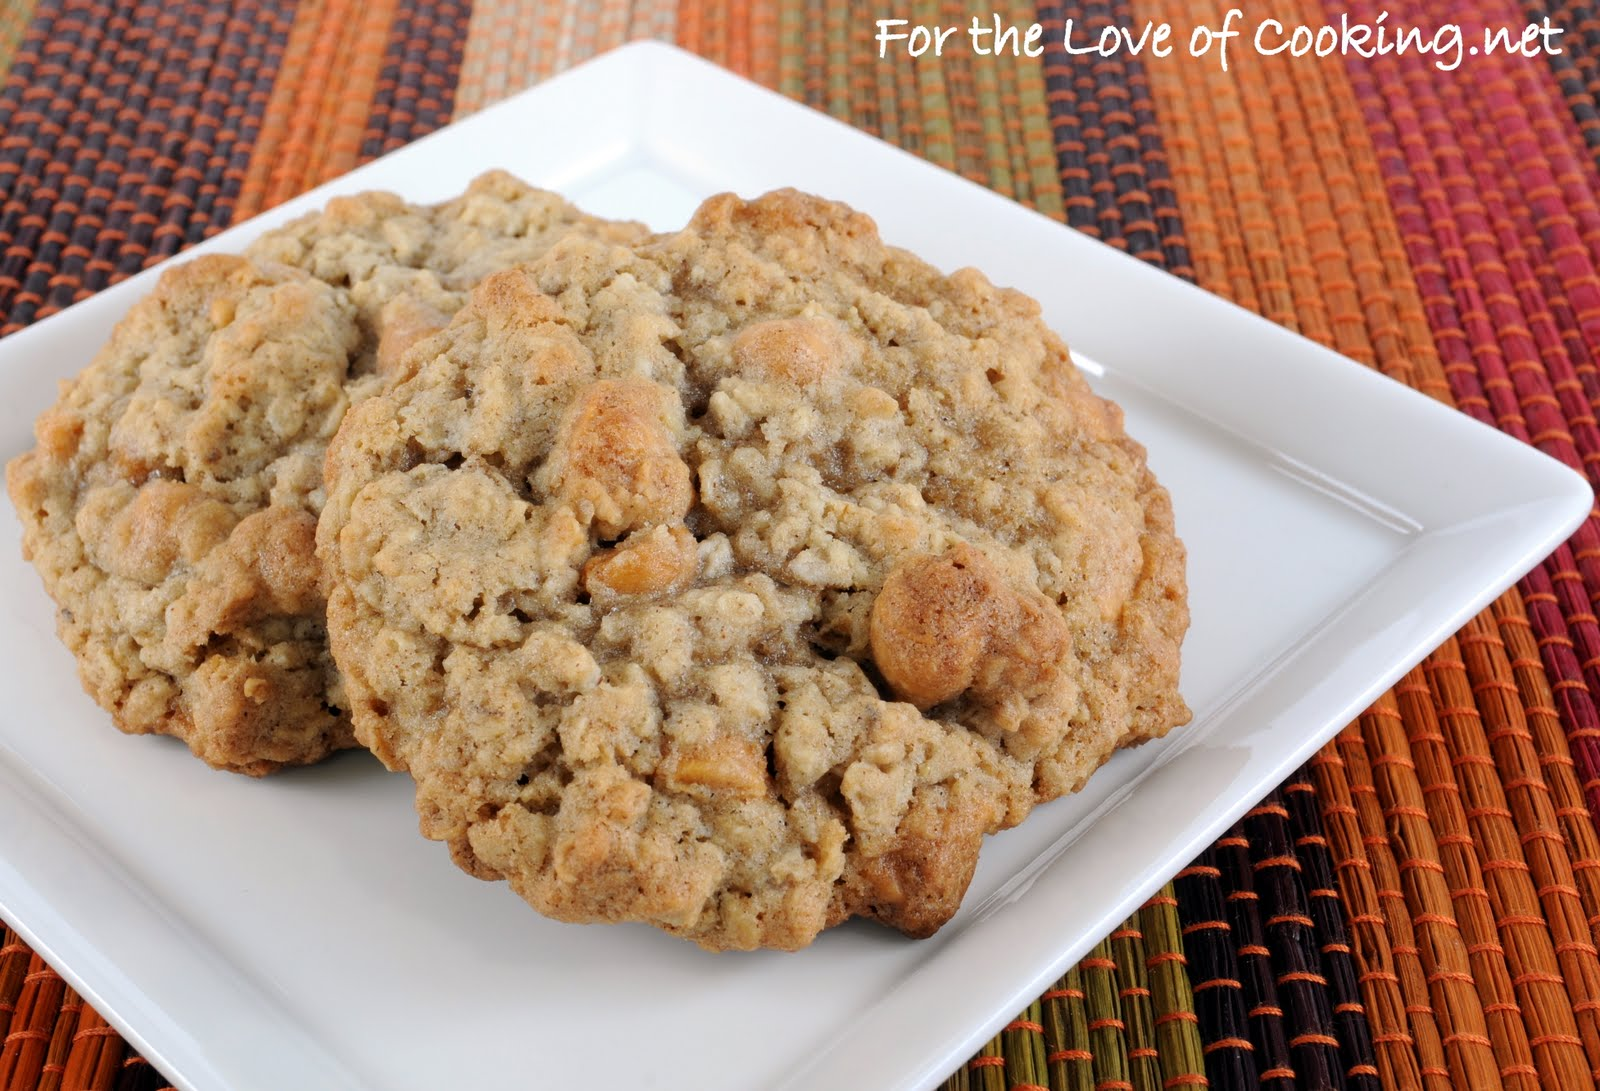 Oatmeal Butterscotch Cookies | For the Love of Cooking